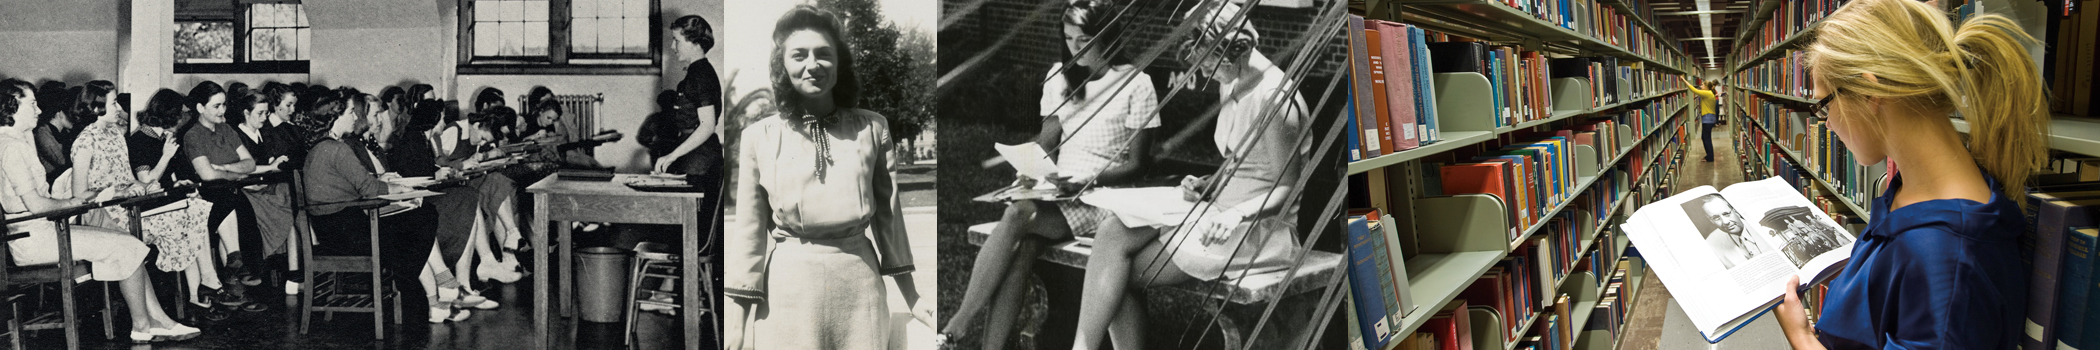 Photos of female FSU students, past to present